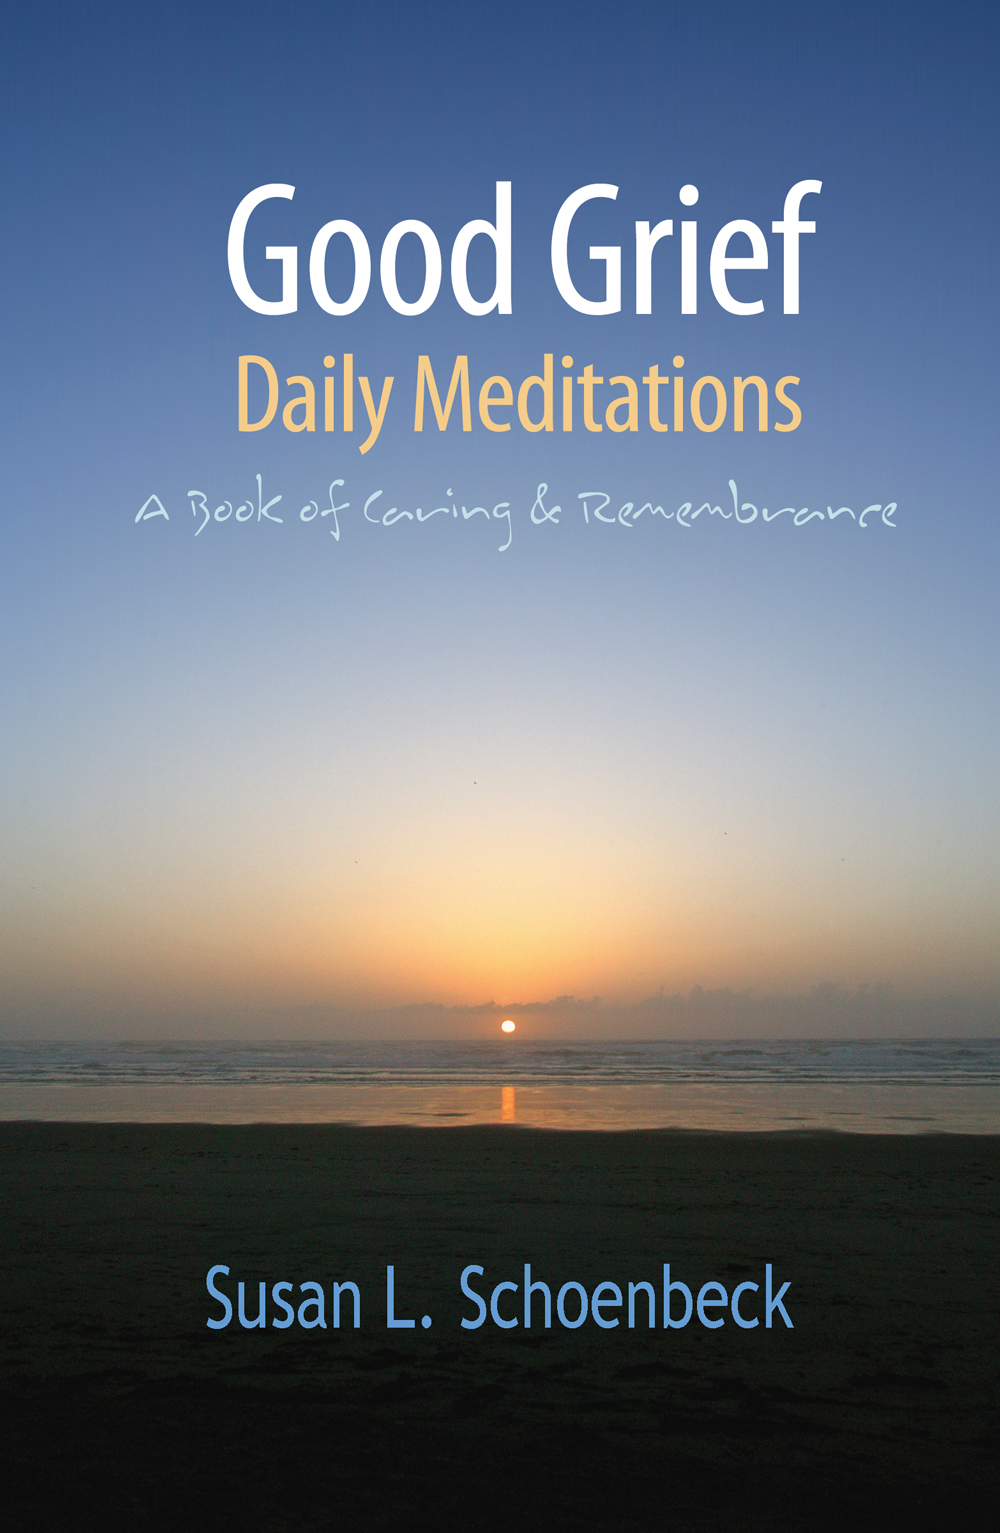 Good Grief: Daily Meditations